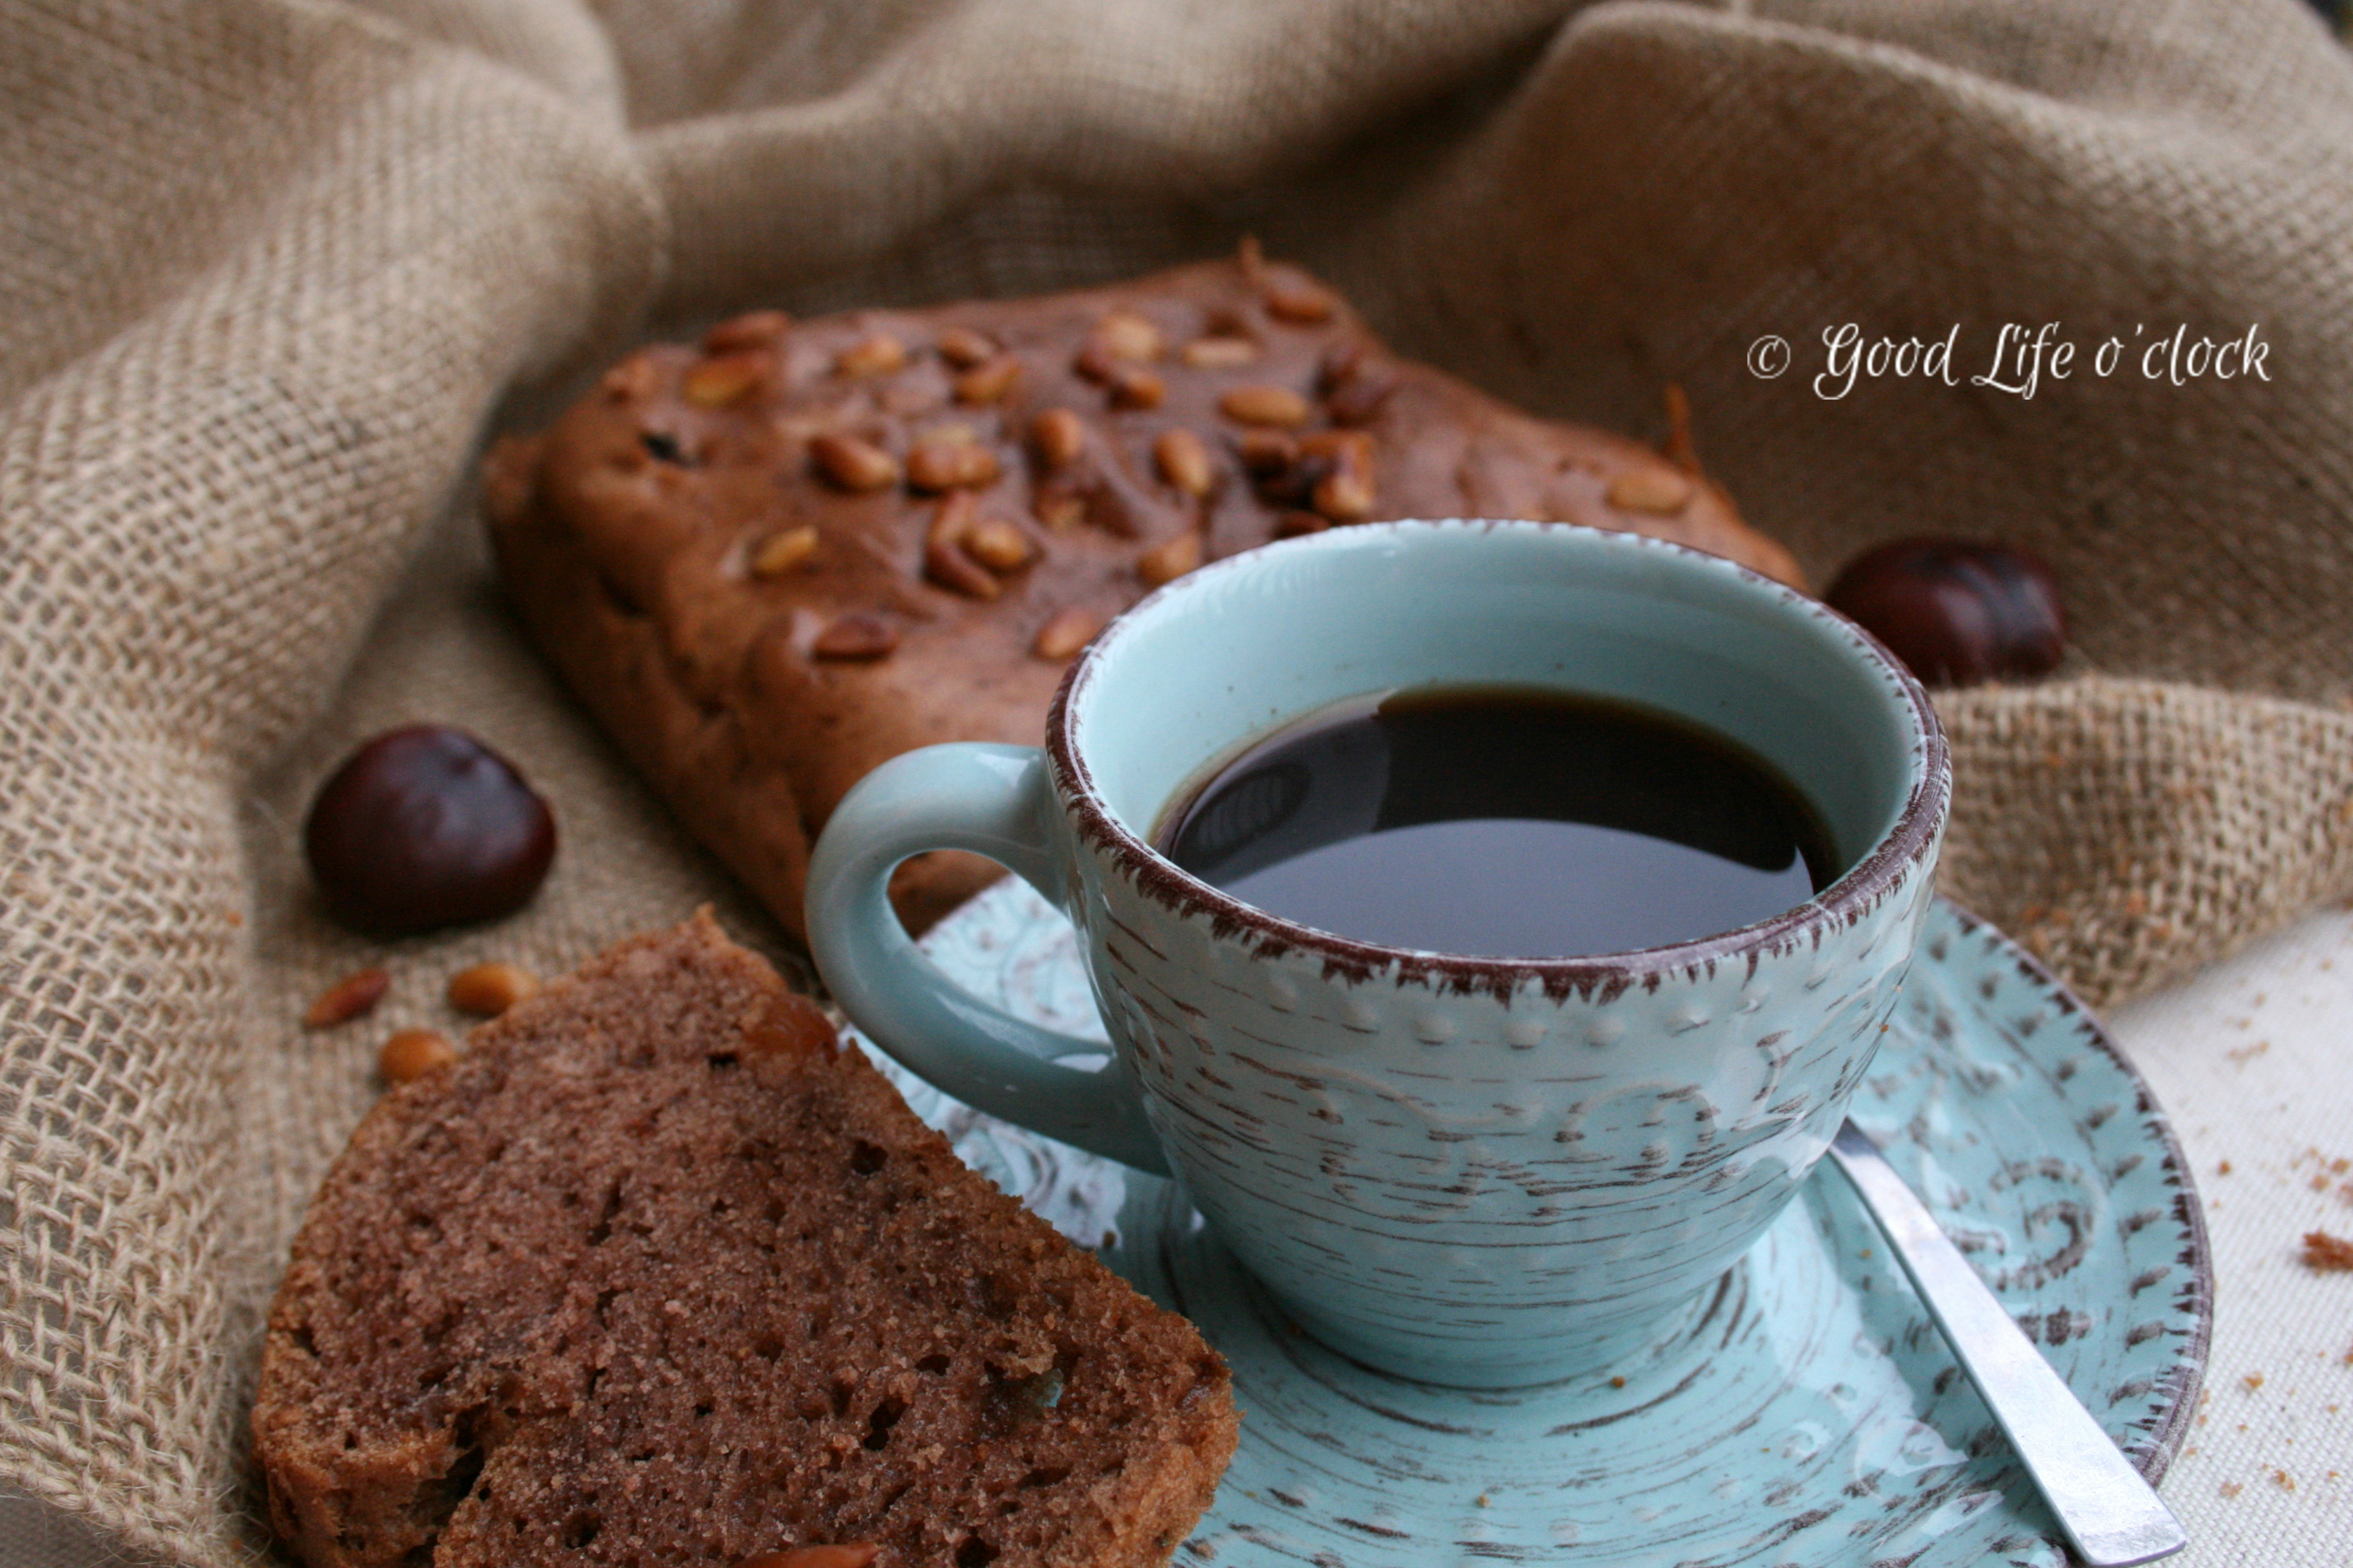 Coffee & Chestnut cake 2